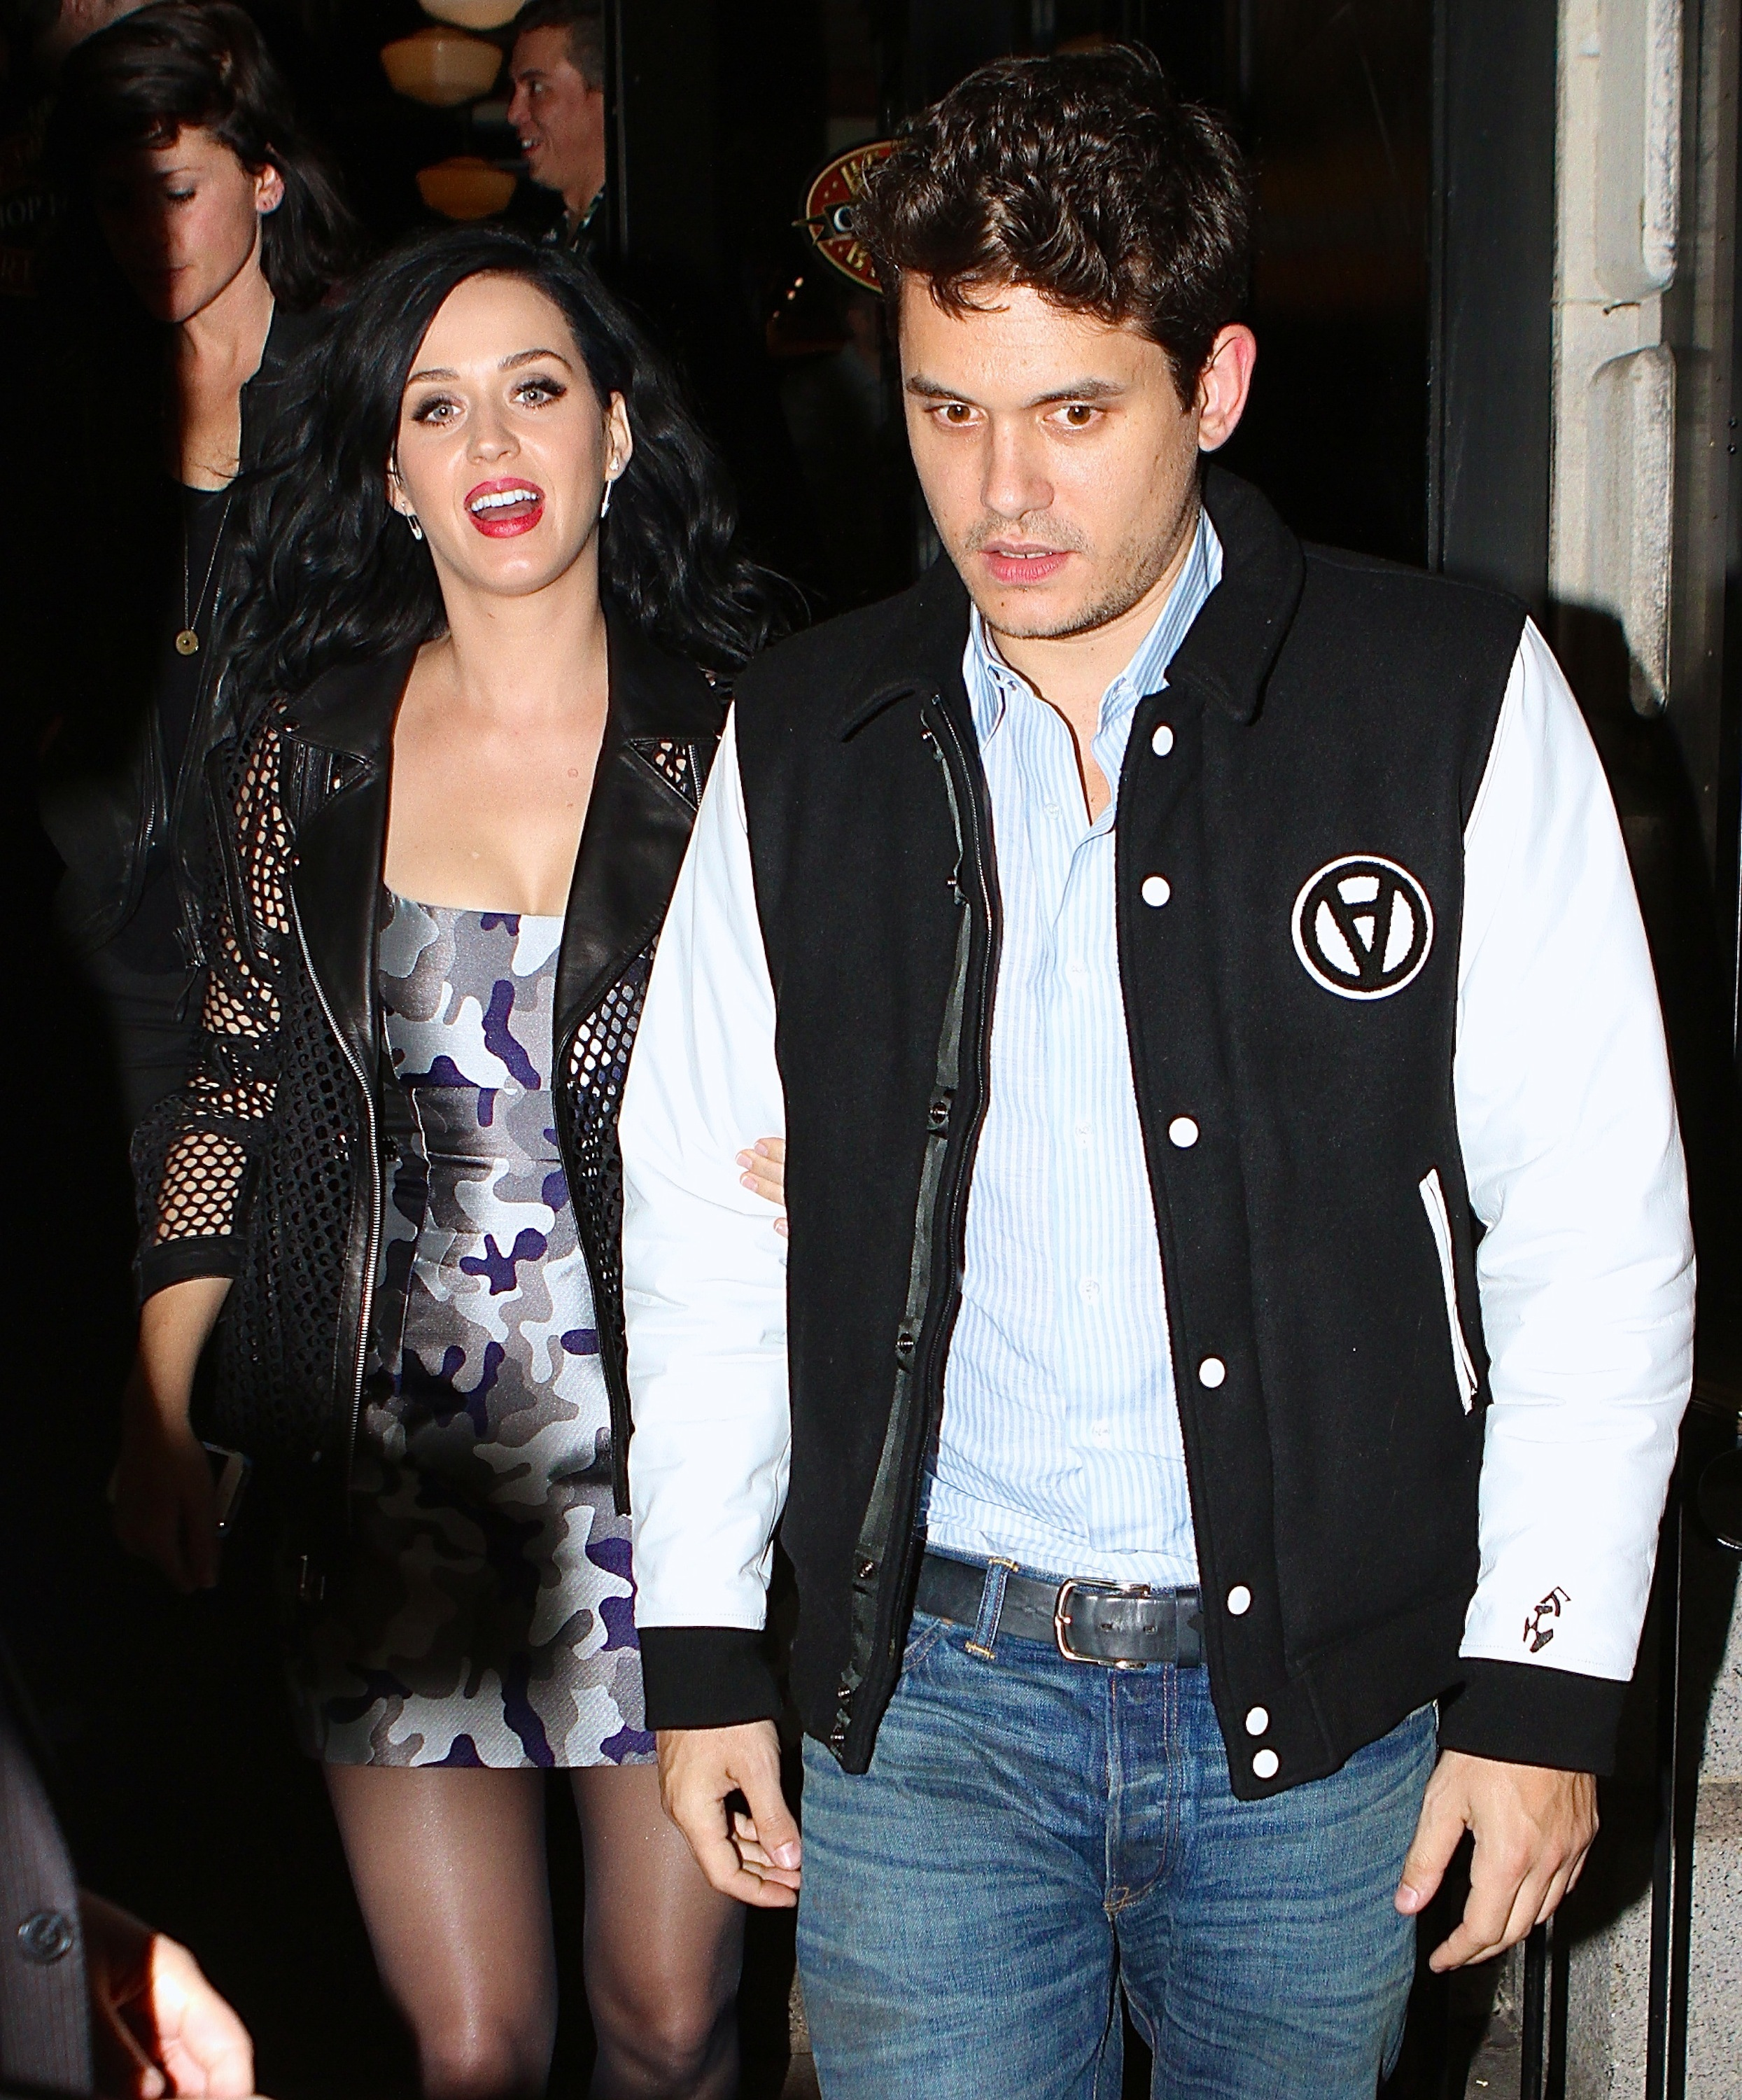 John Mayer Katy Perry wedding